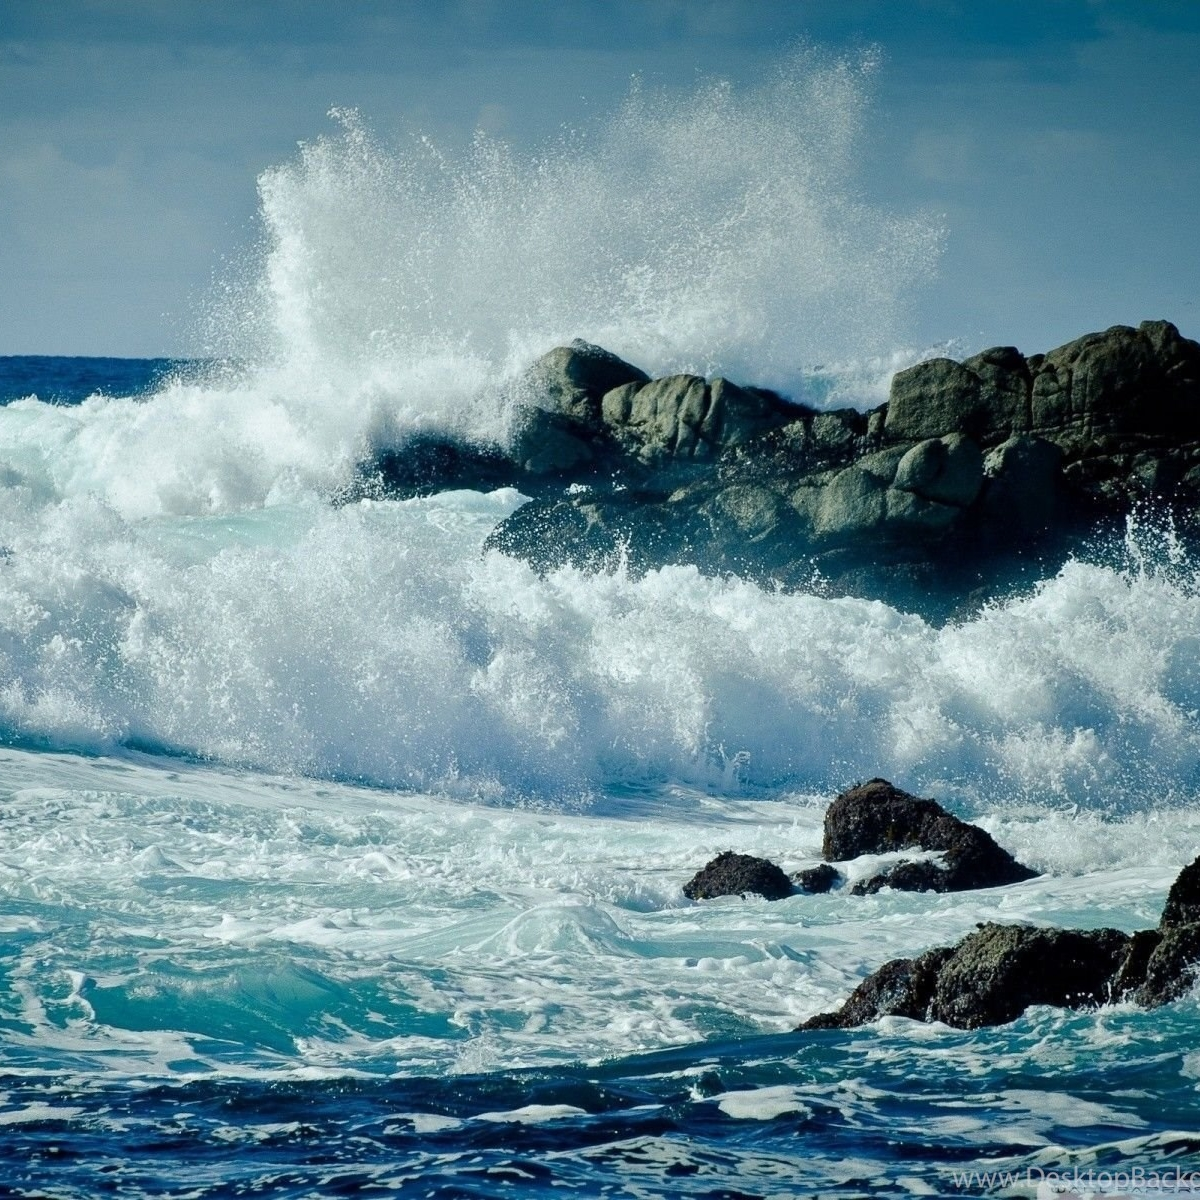 Ocean climate patterns linked to diarrhea epidemic outbreaks